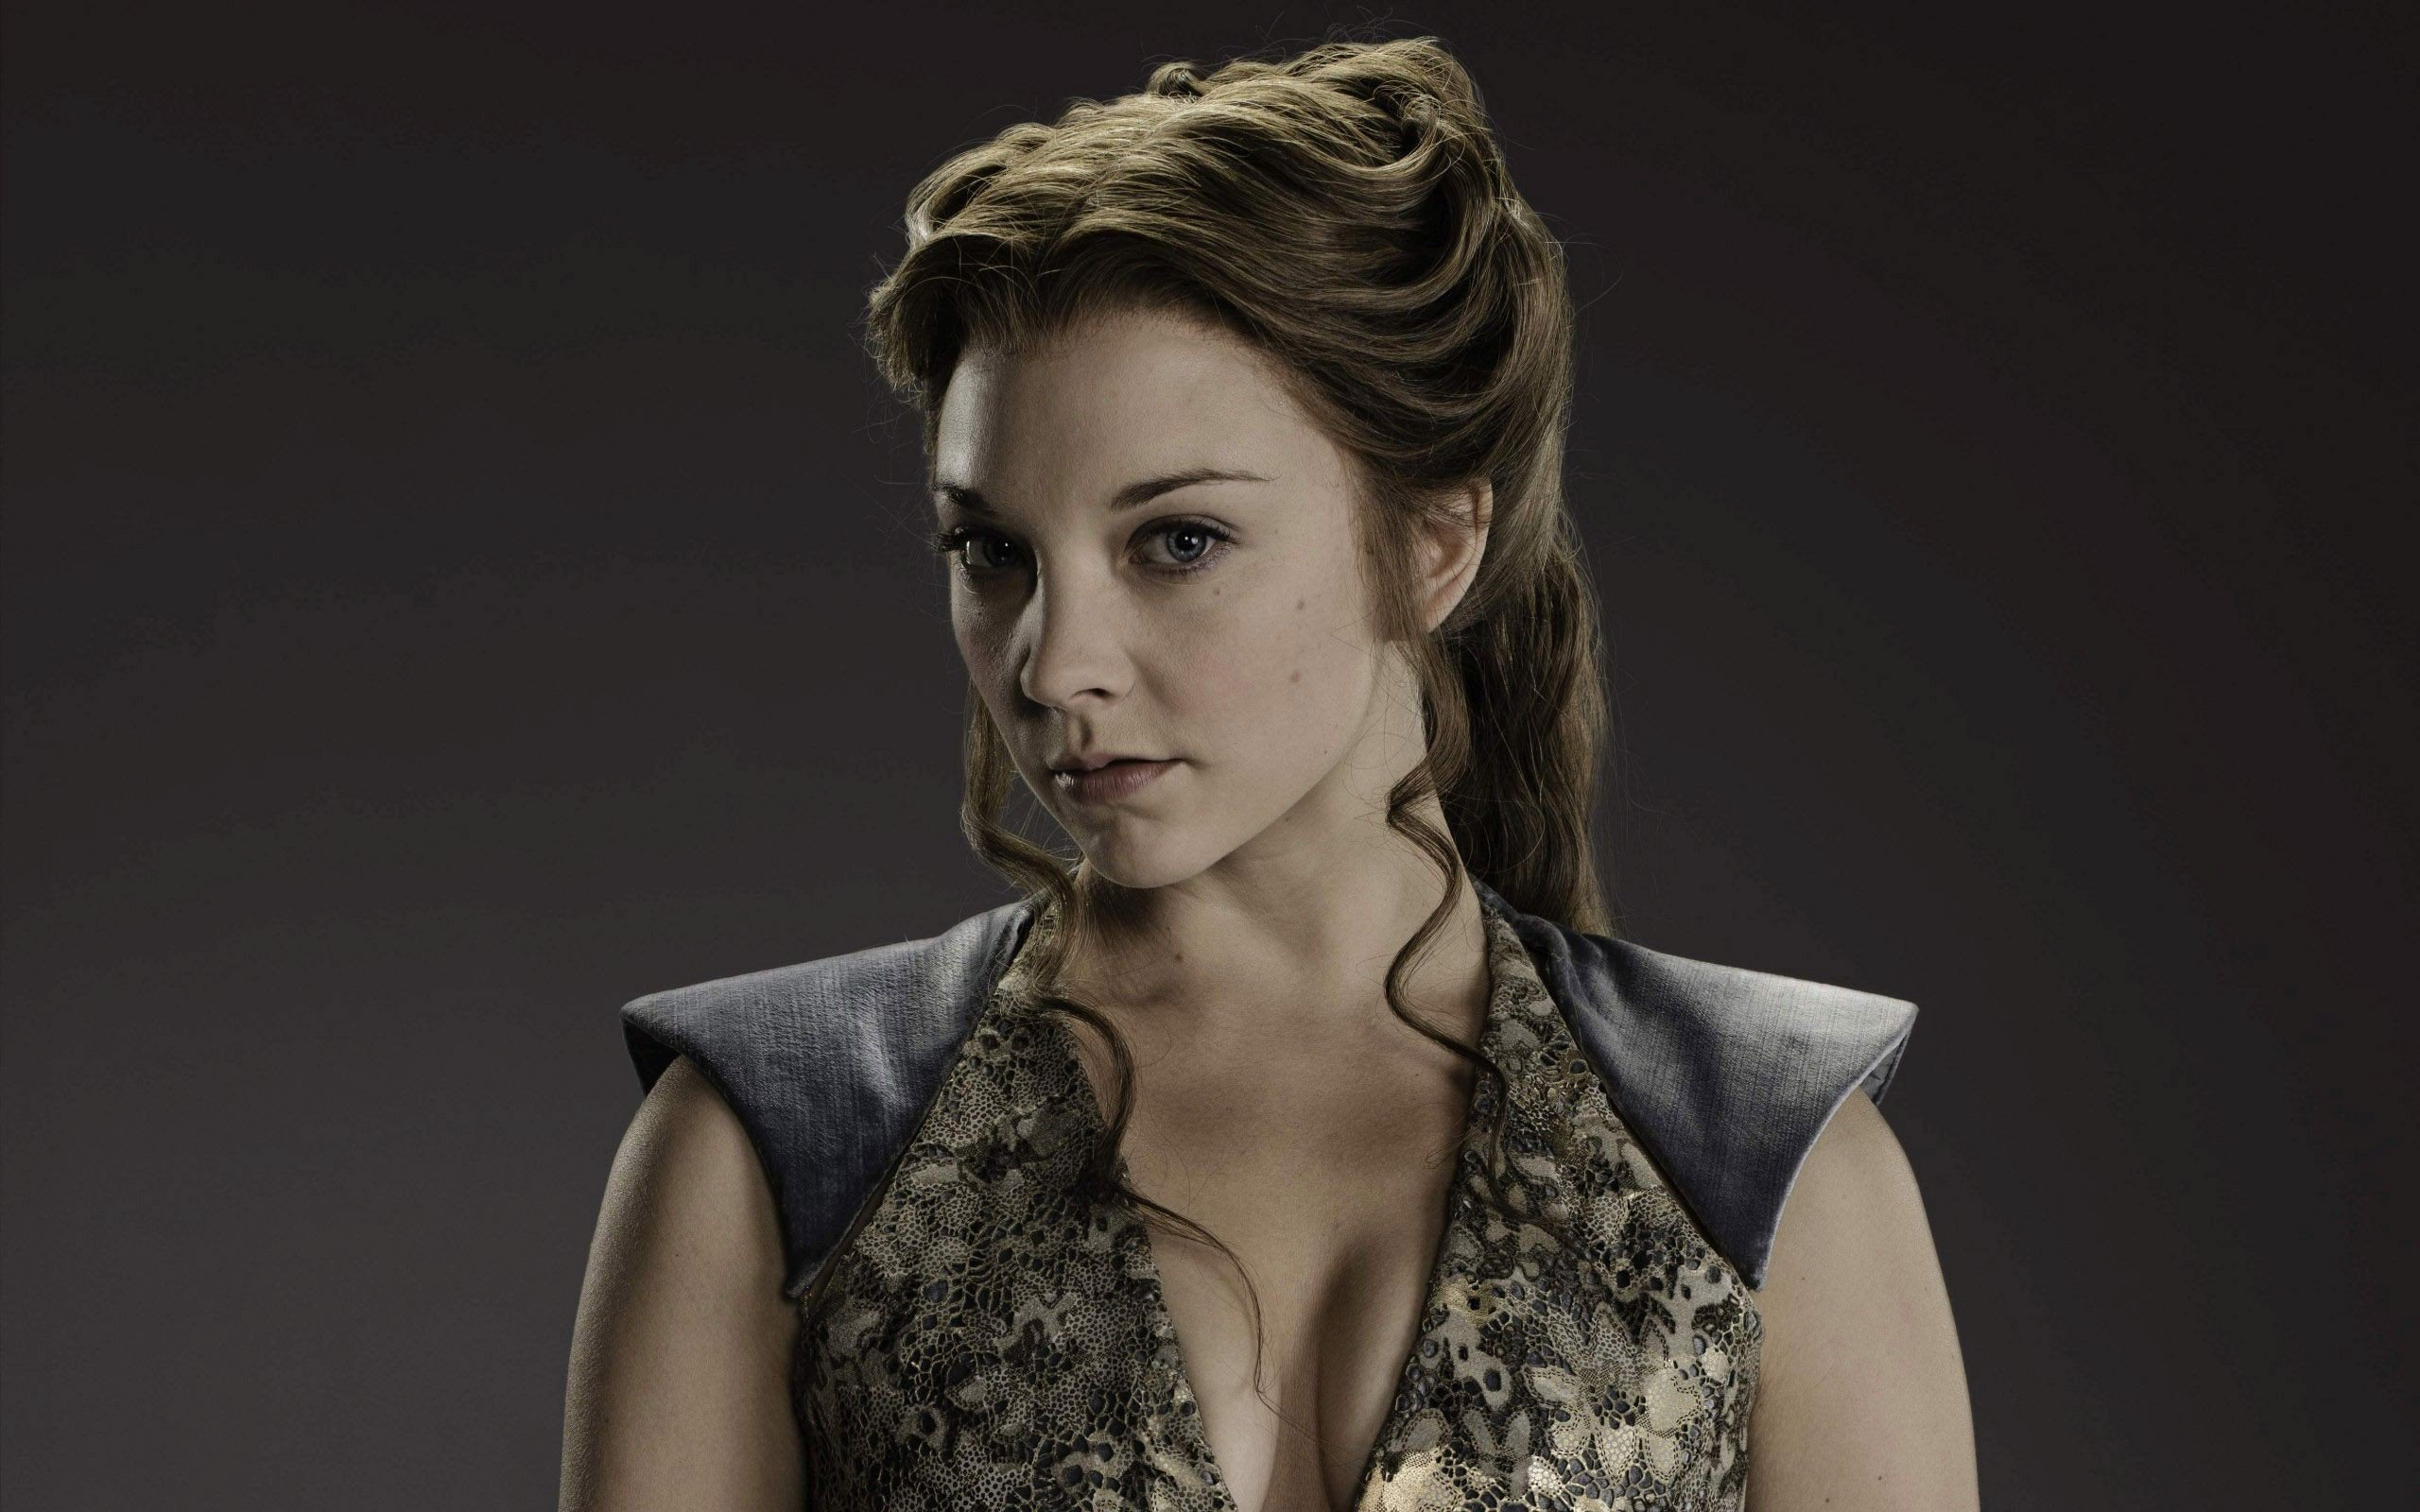 Natalie Dormer Game Of Thrones Margaery Tyrell Women Actress